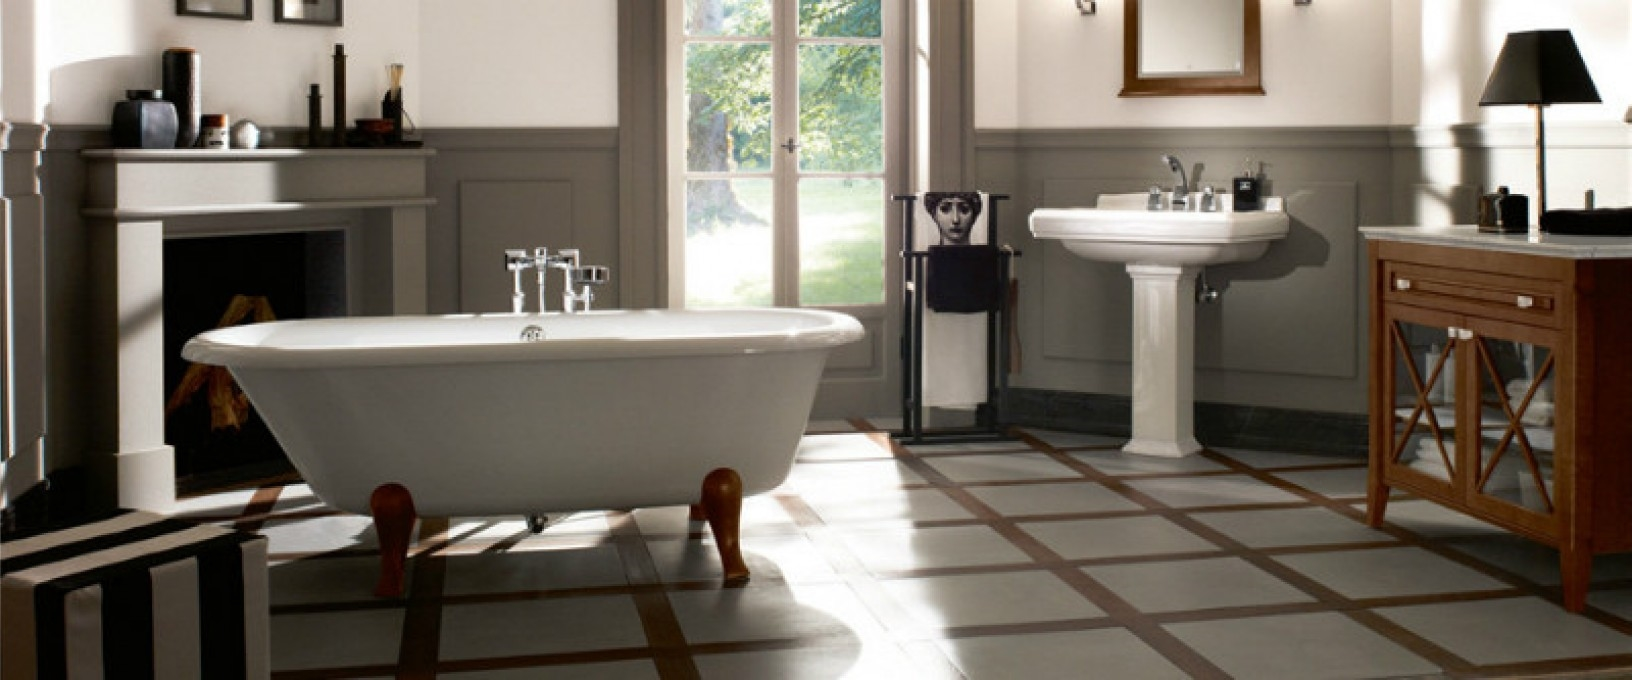 baie-victoriana-hommage-villeroy-and-boch-decovilshop